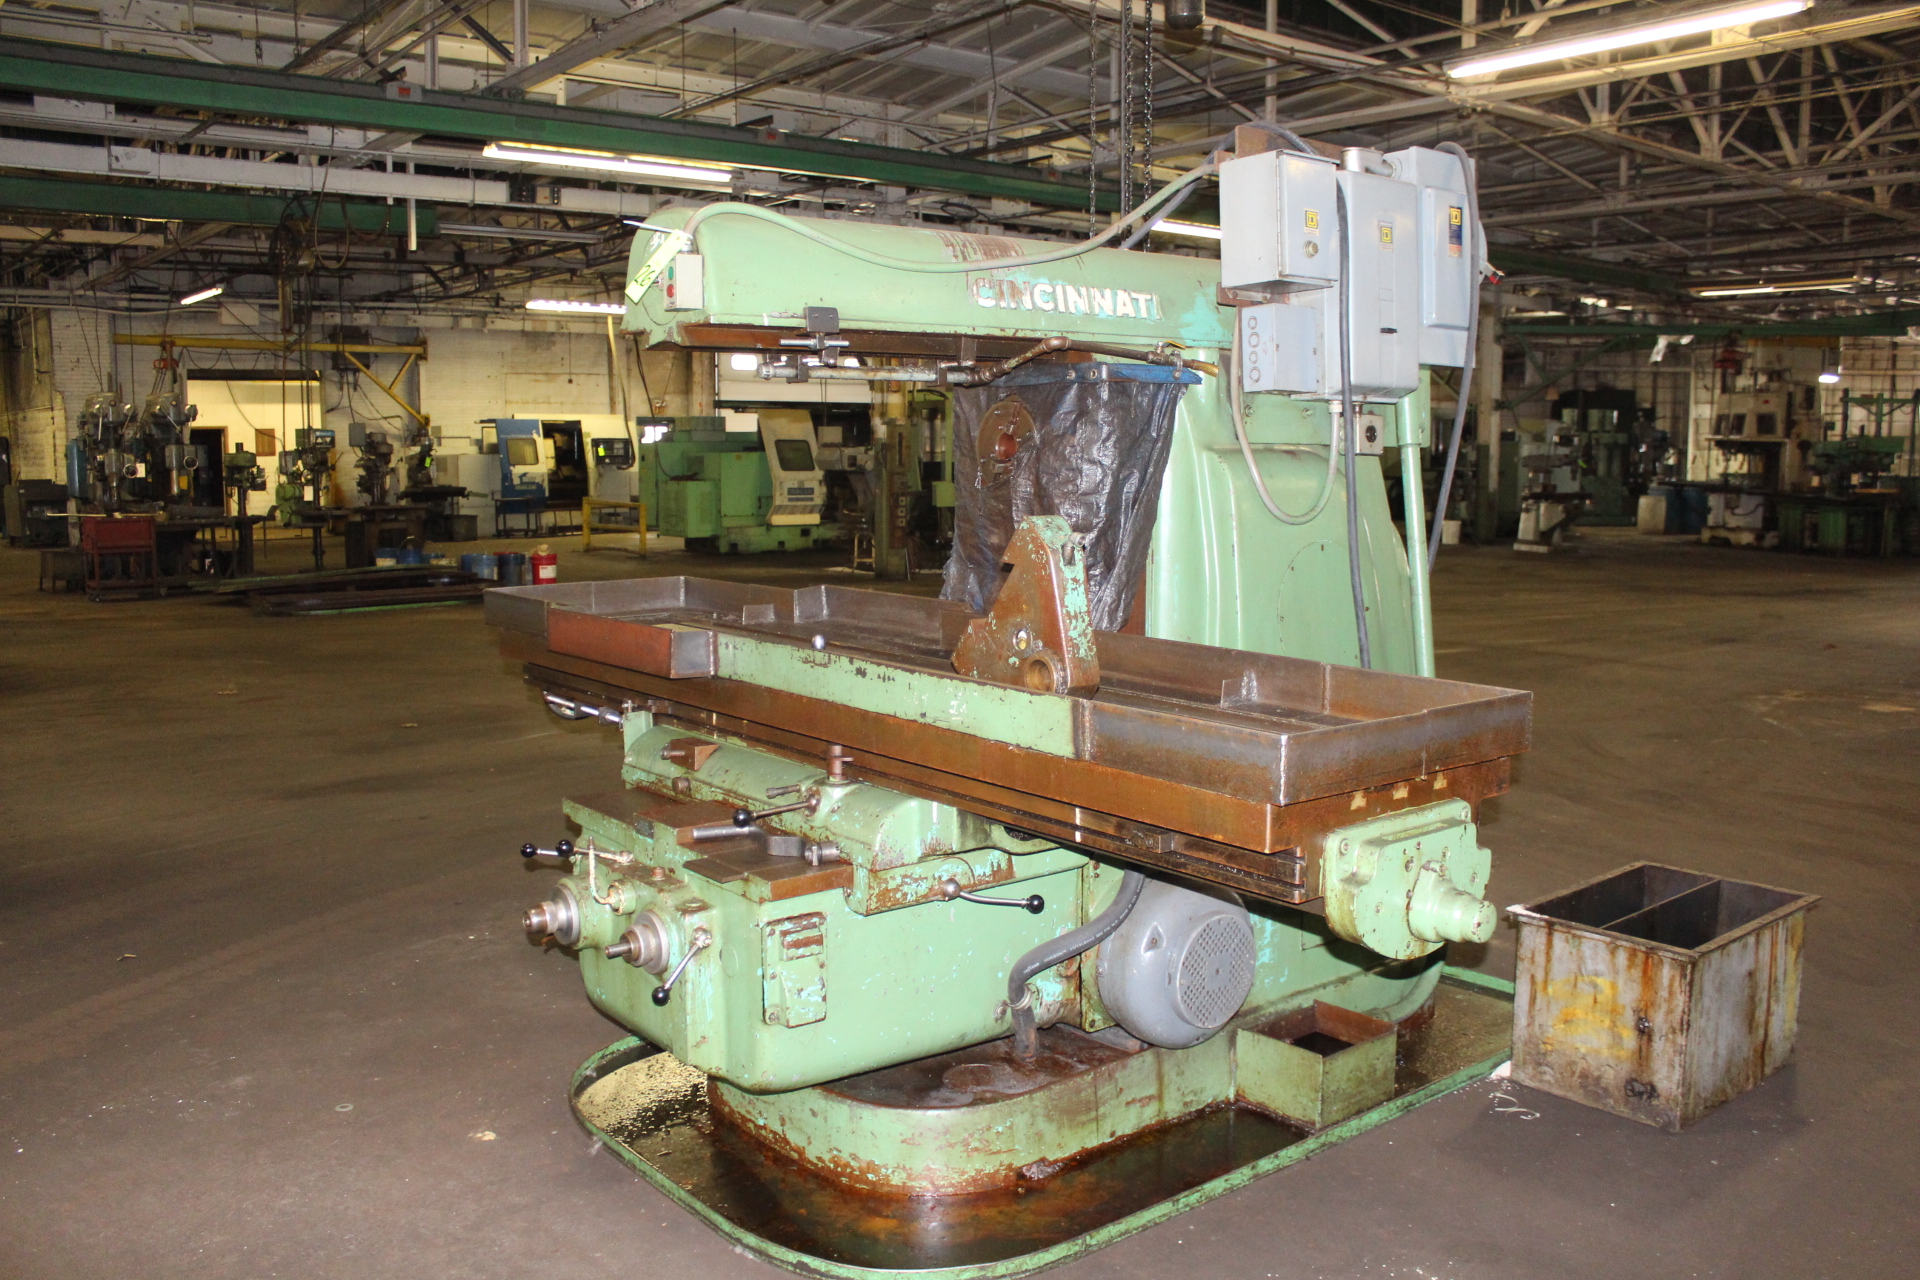 Lot 26 - Cincinnati No. 5 Dial Type Plain Horizontal Milling Machine